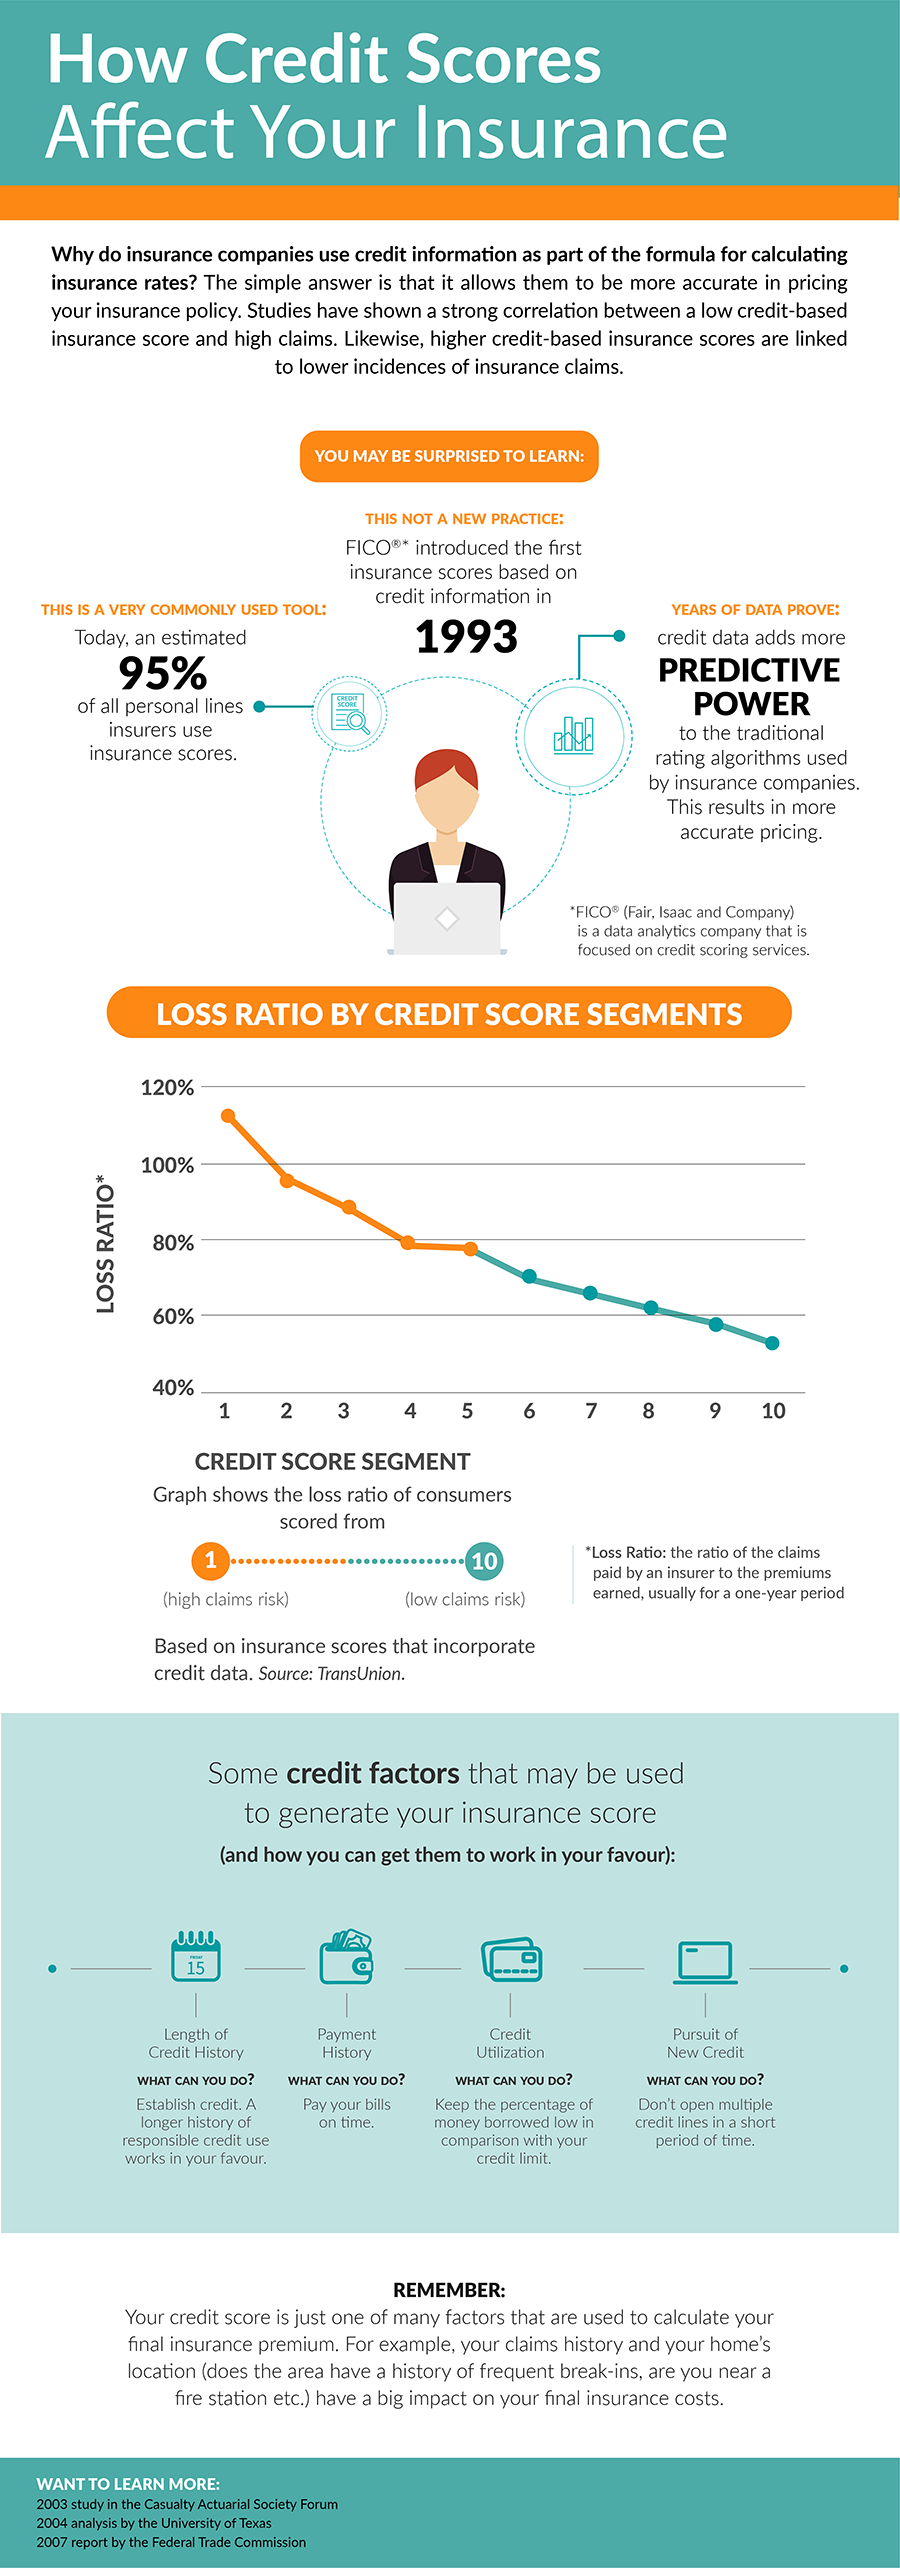 how credit scores affect your insurance